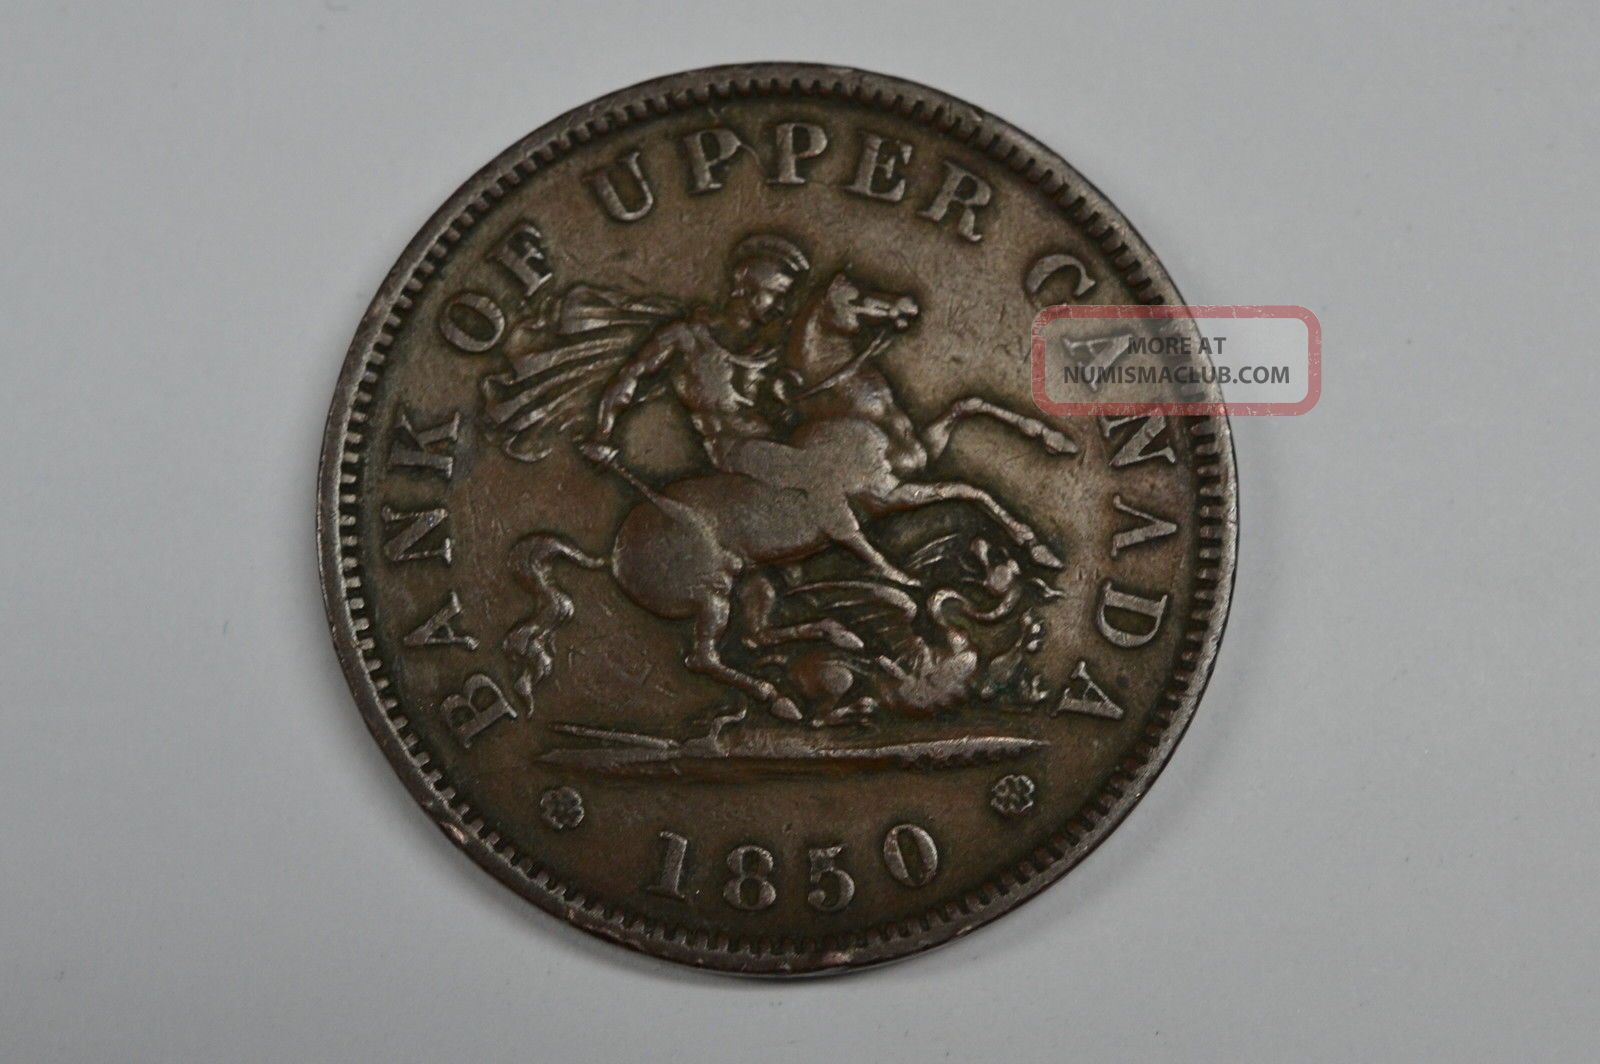 1850 Canada Large Cent Token Vf Plus